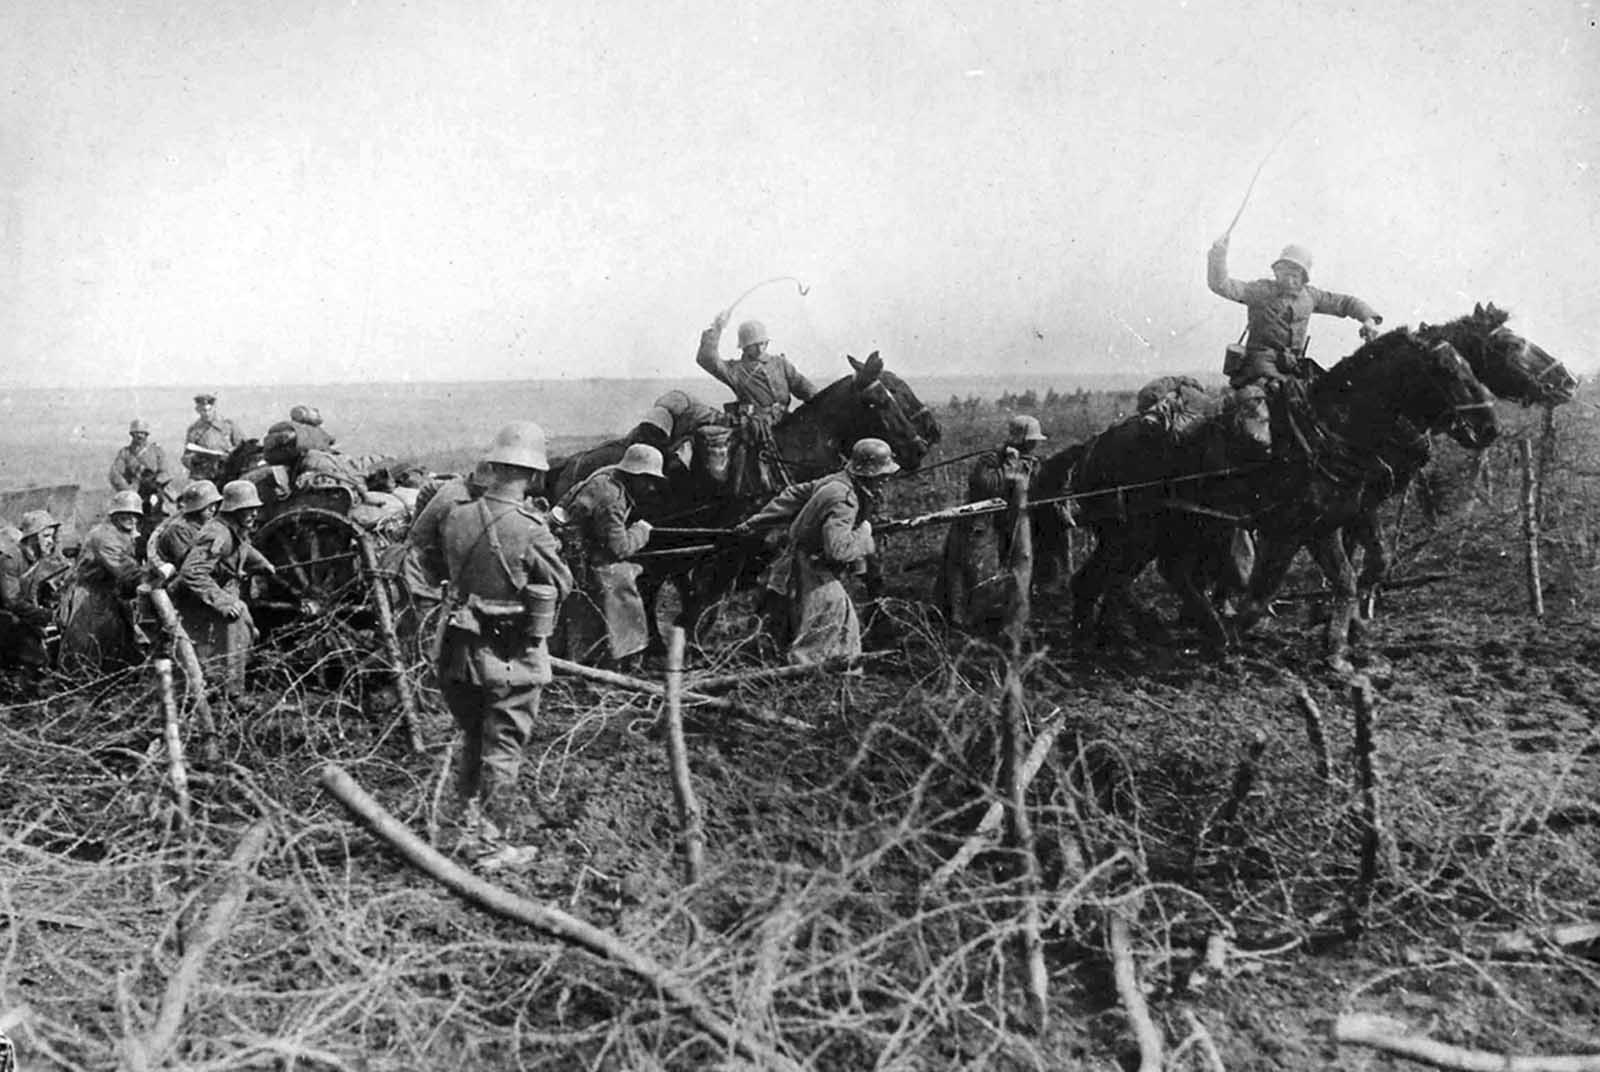 The breakthrough west of St. Quentin, Aisne, France. Artillery drawn by horses advances through captured British positions on March 26, 1918.